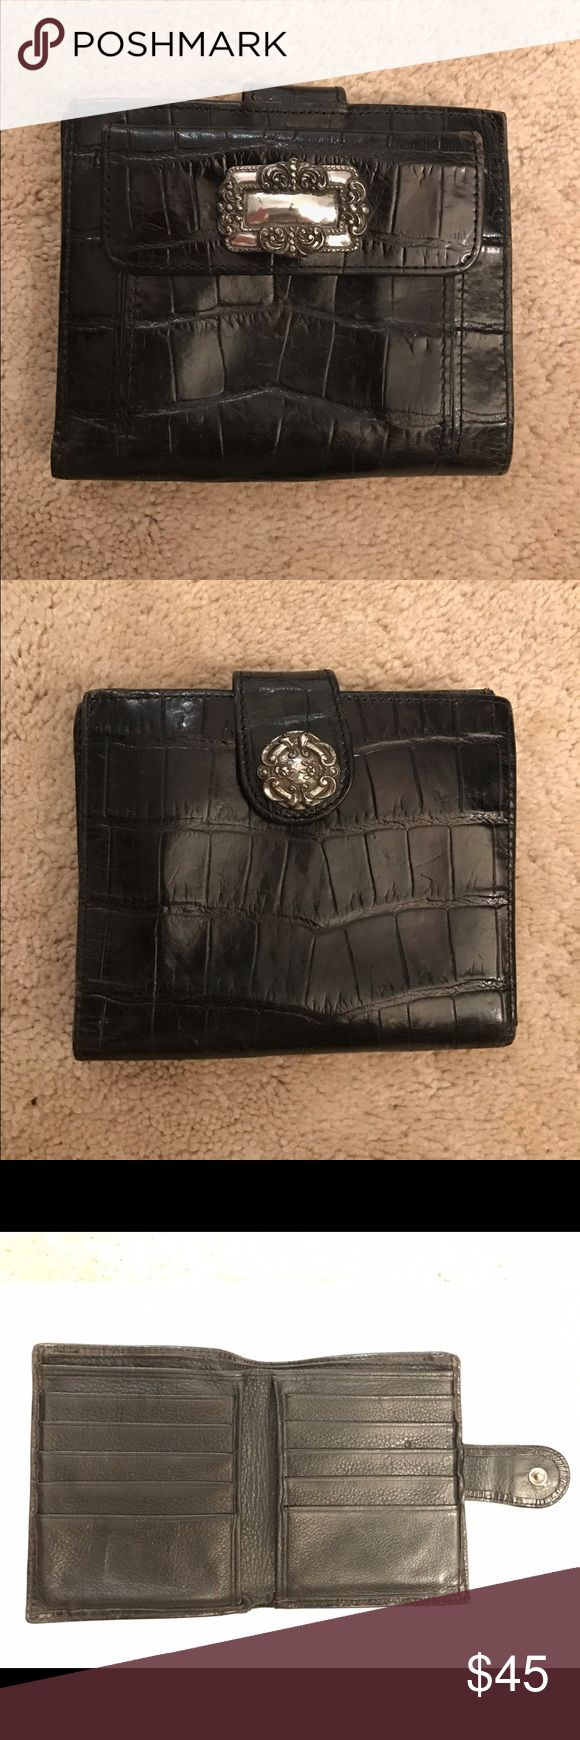 Brighton Black Croco Embossed Leather Wallet Jewelry like accents, 5x4.5x0.5, 10 credit card slots, 2 interior pockets plus 2 bill pockets, exterior snap closure, exterior coin pocket with snap closure. Barely used Brighton Bags Wallets